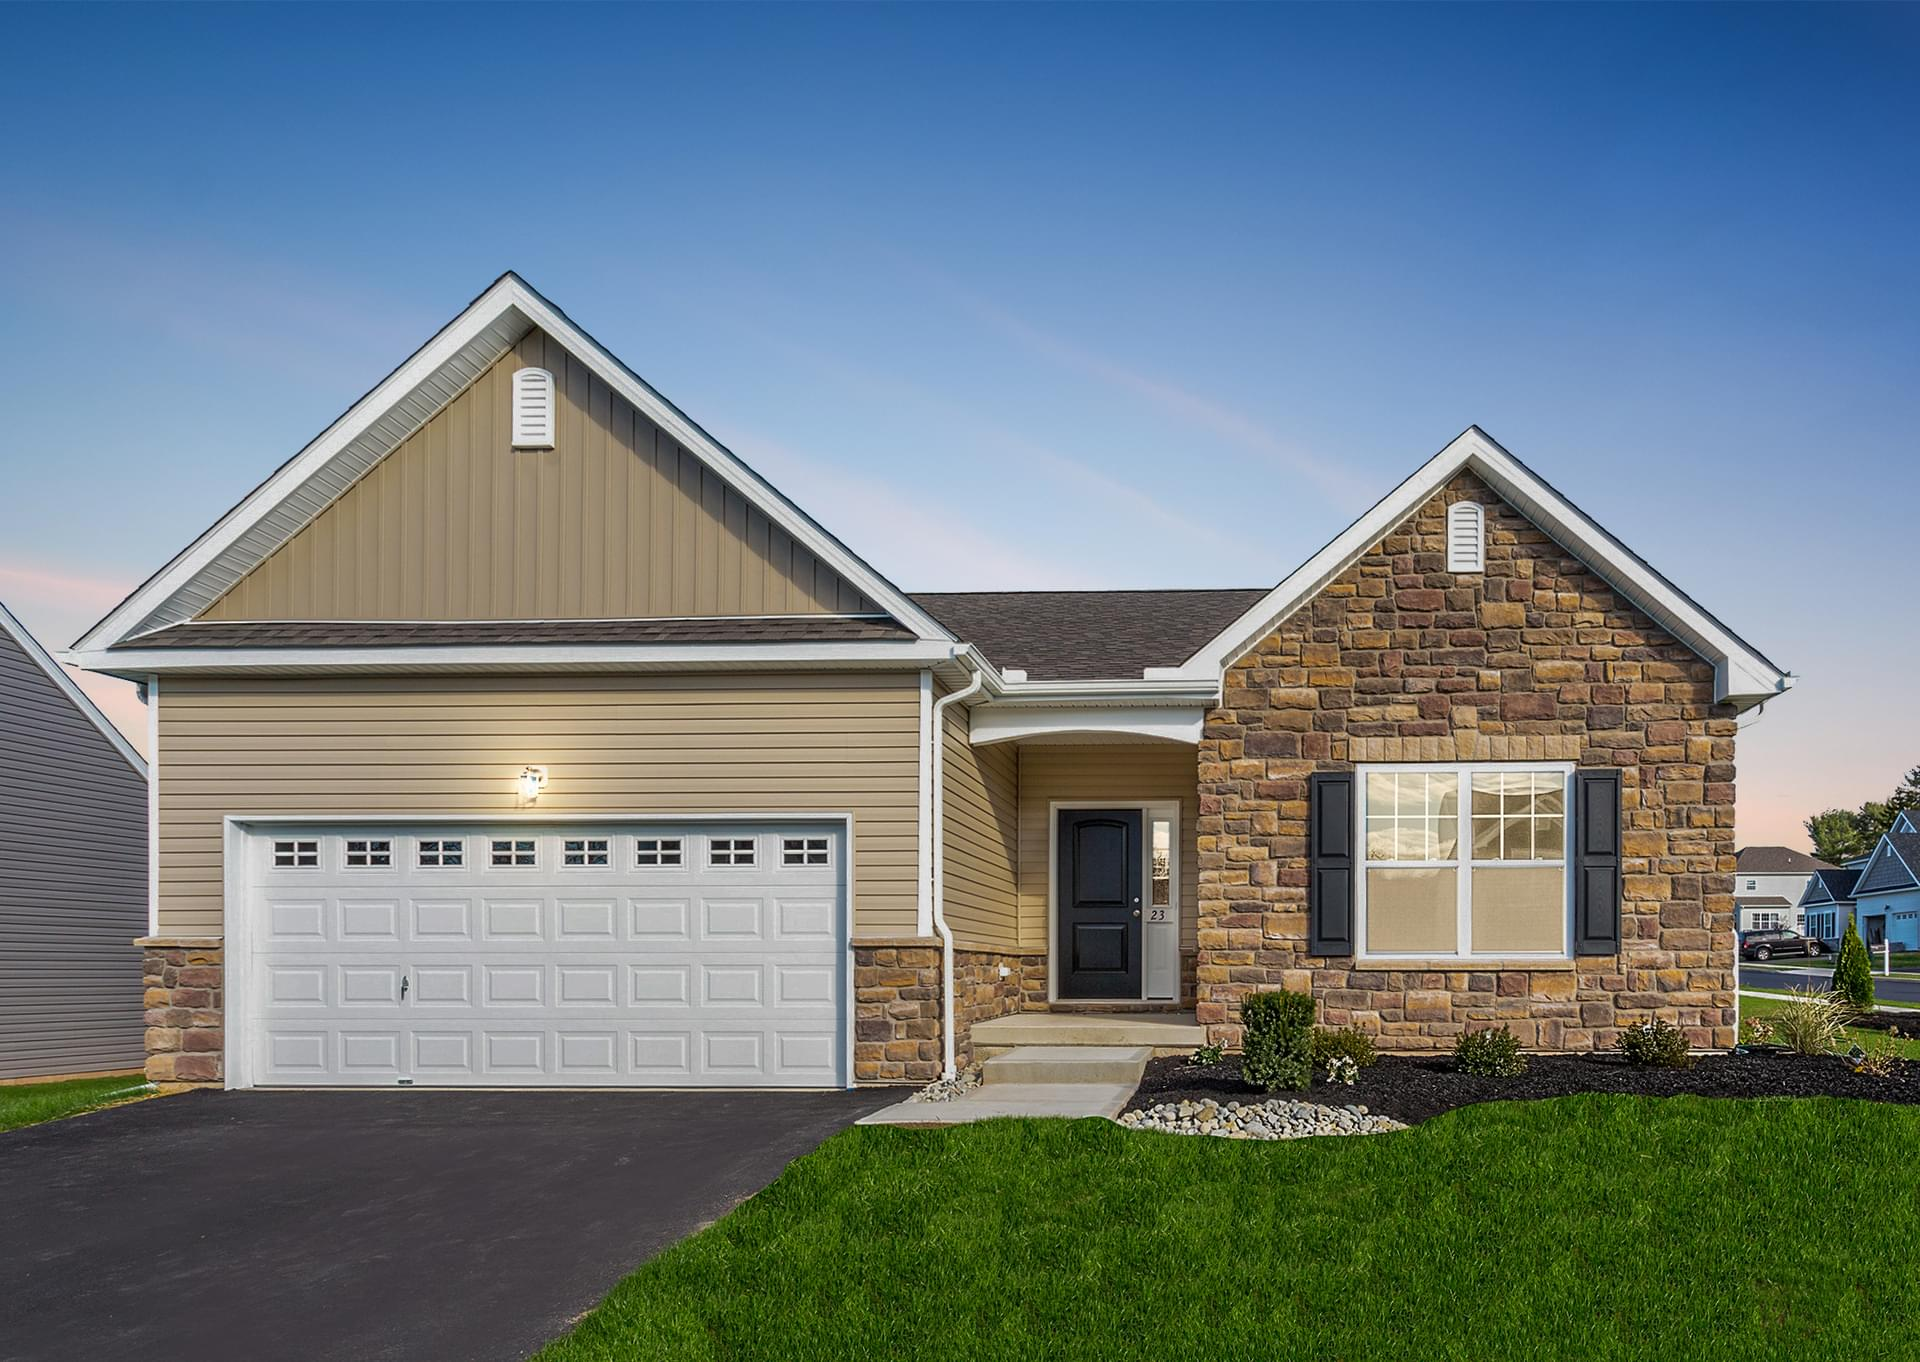 Golden Oaks Village New Homes in White Haven PA